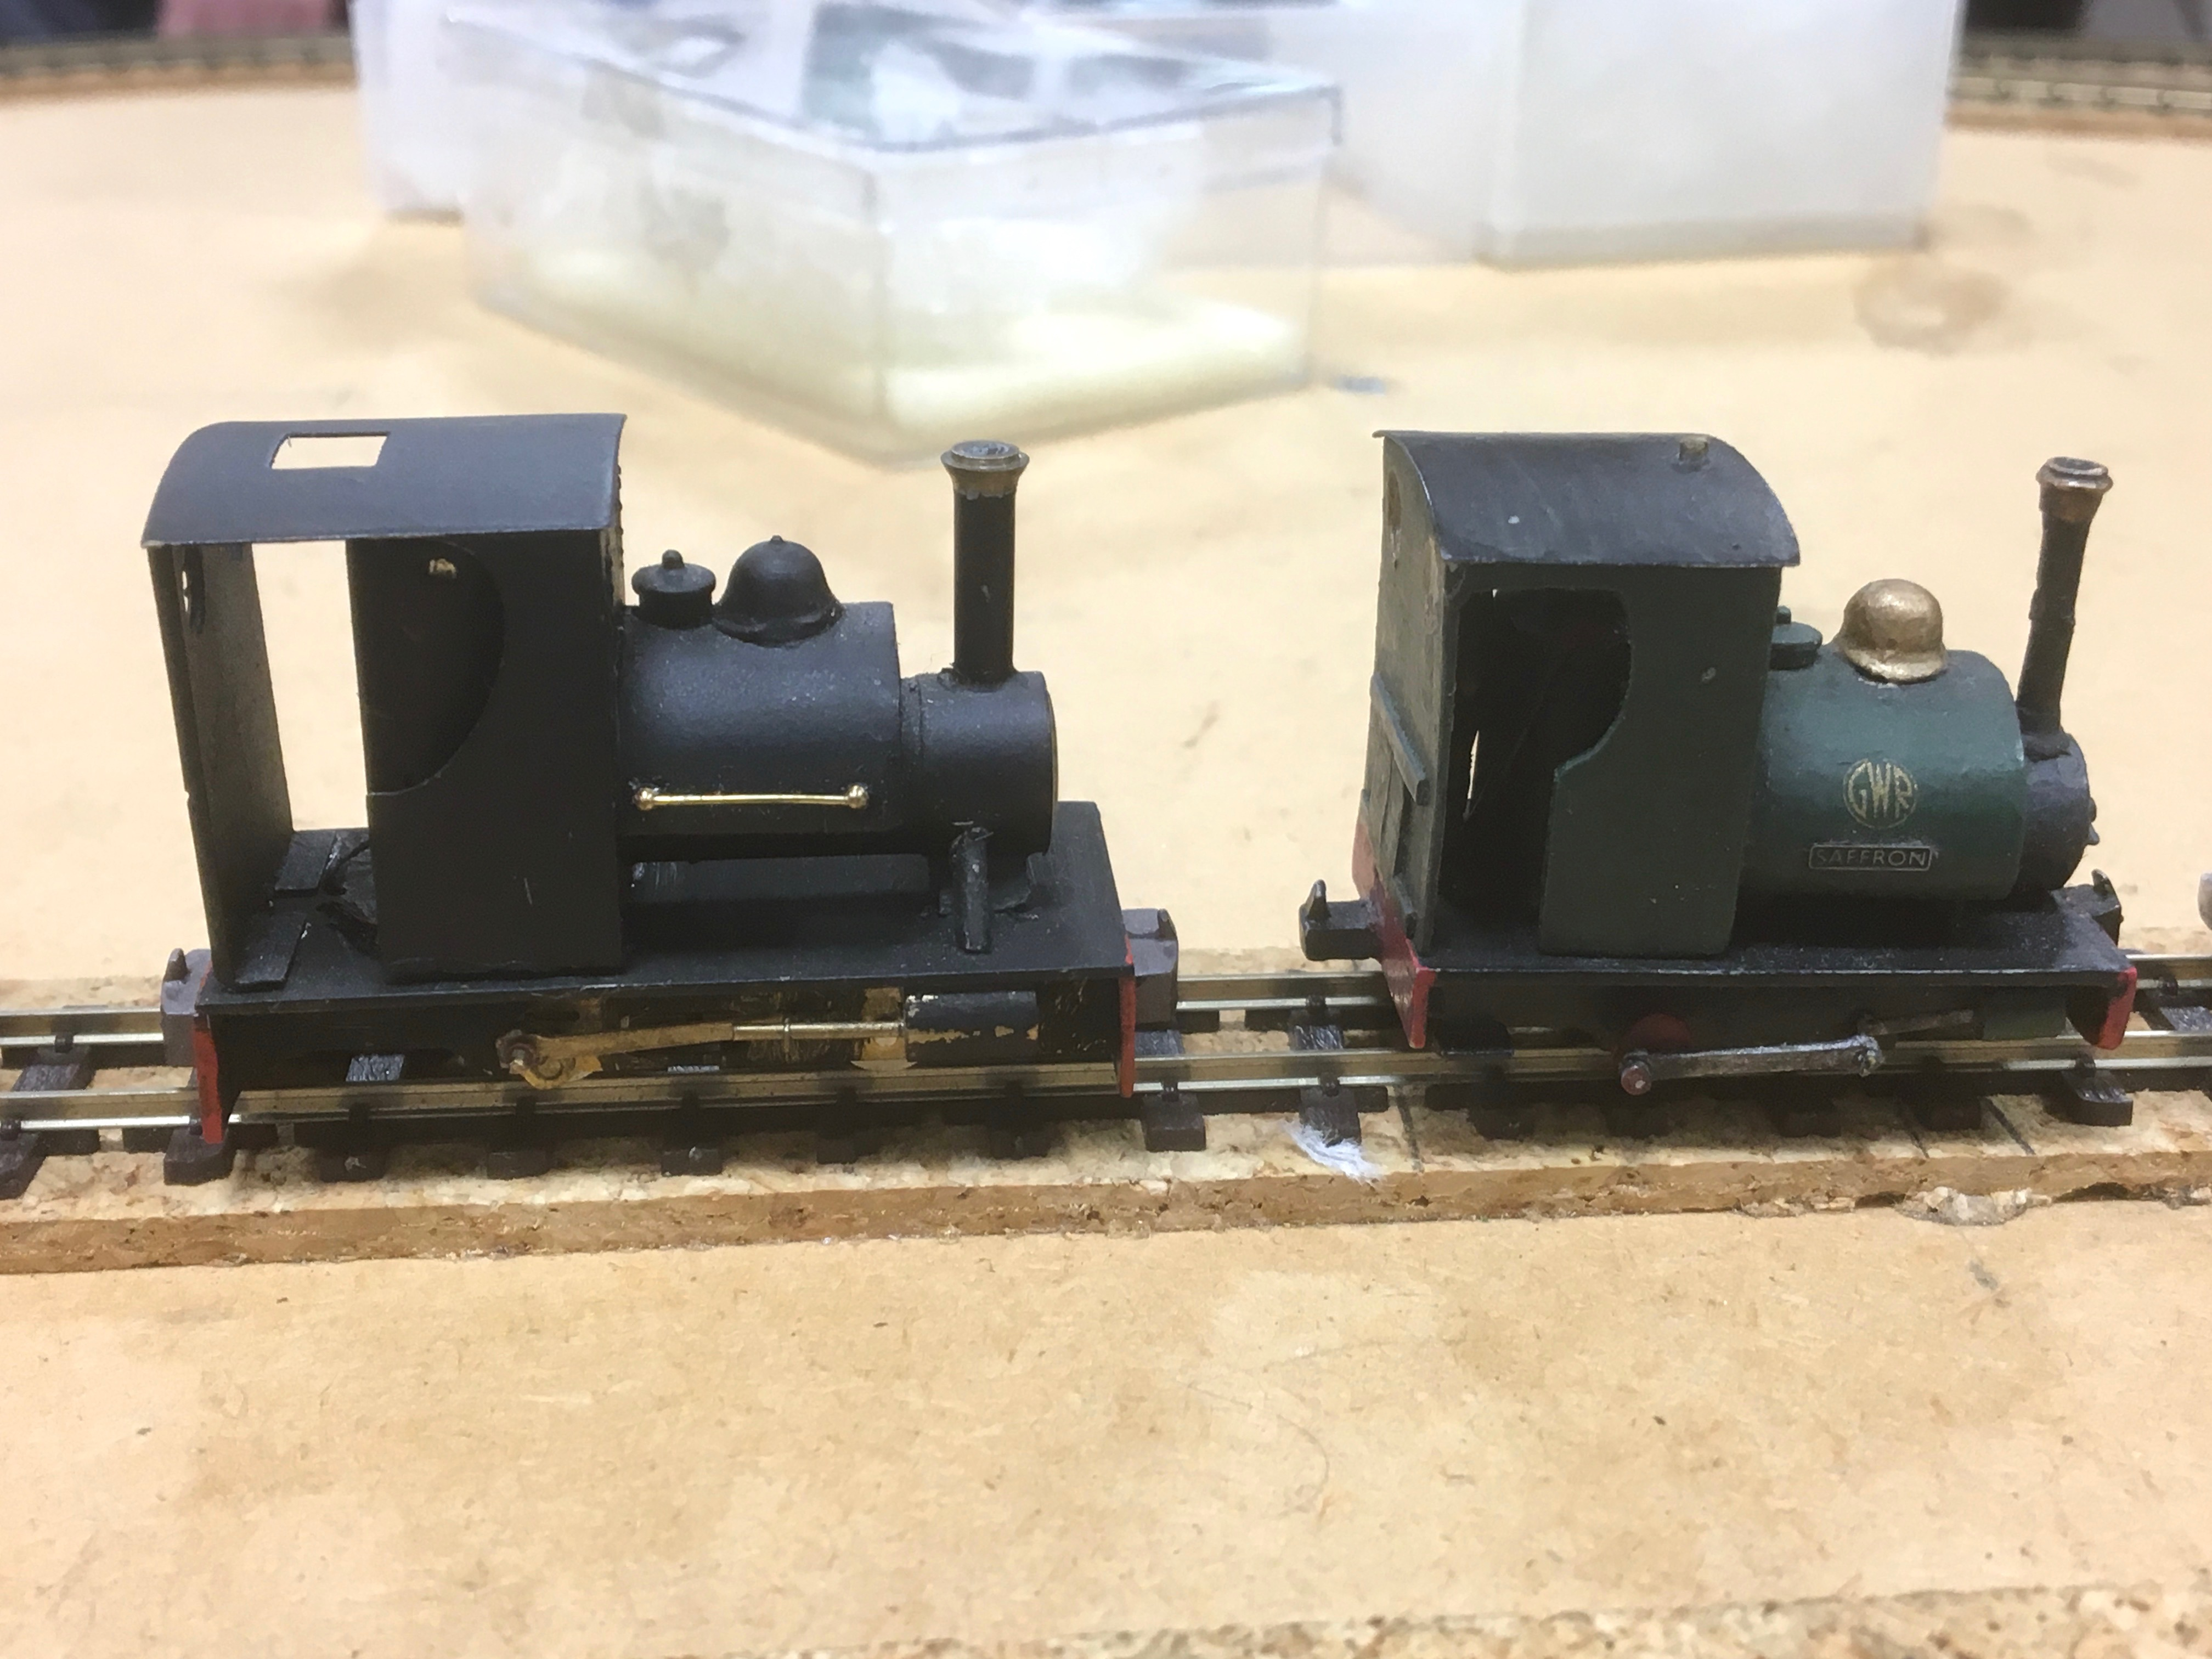 Saltford Models Audley (left) from Julien Webb's collection and Will King's Churchwater loco